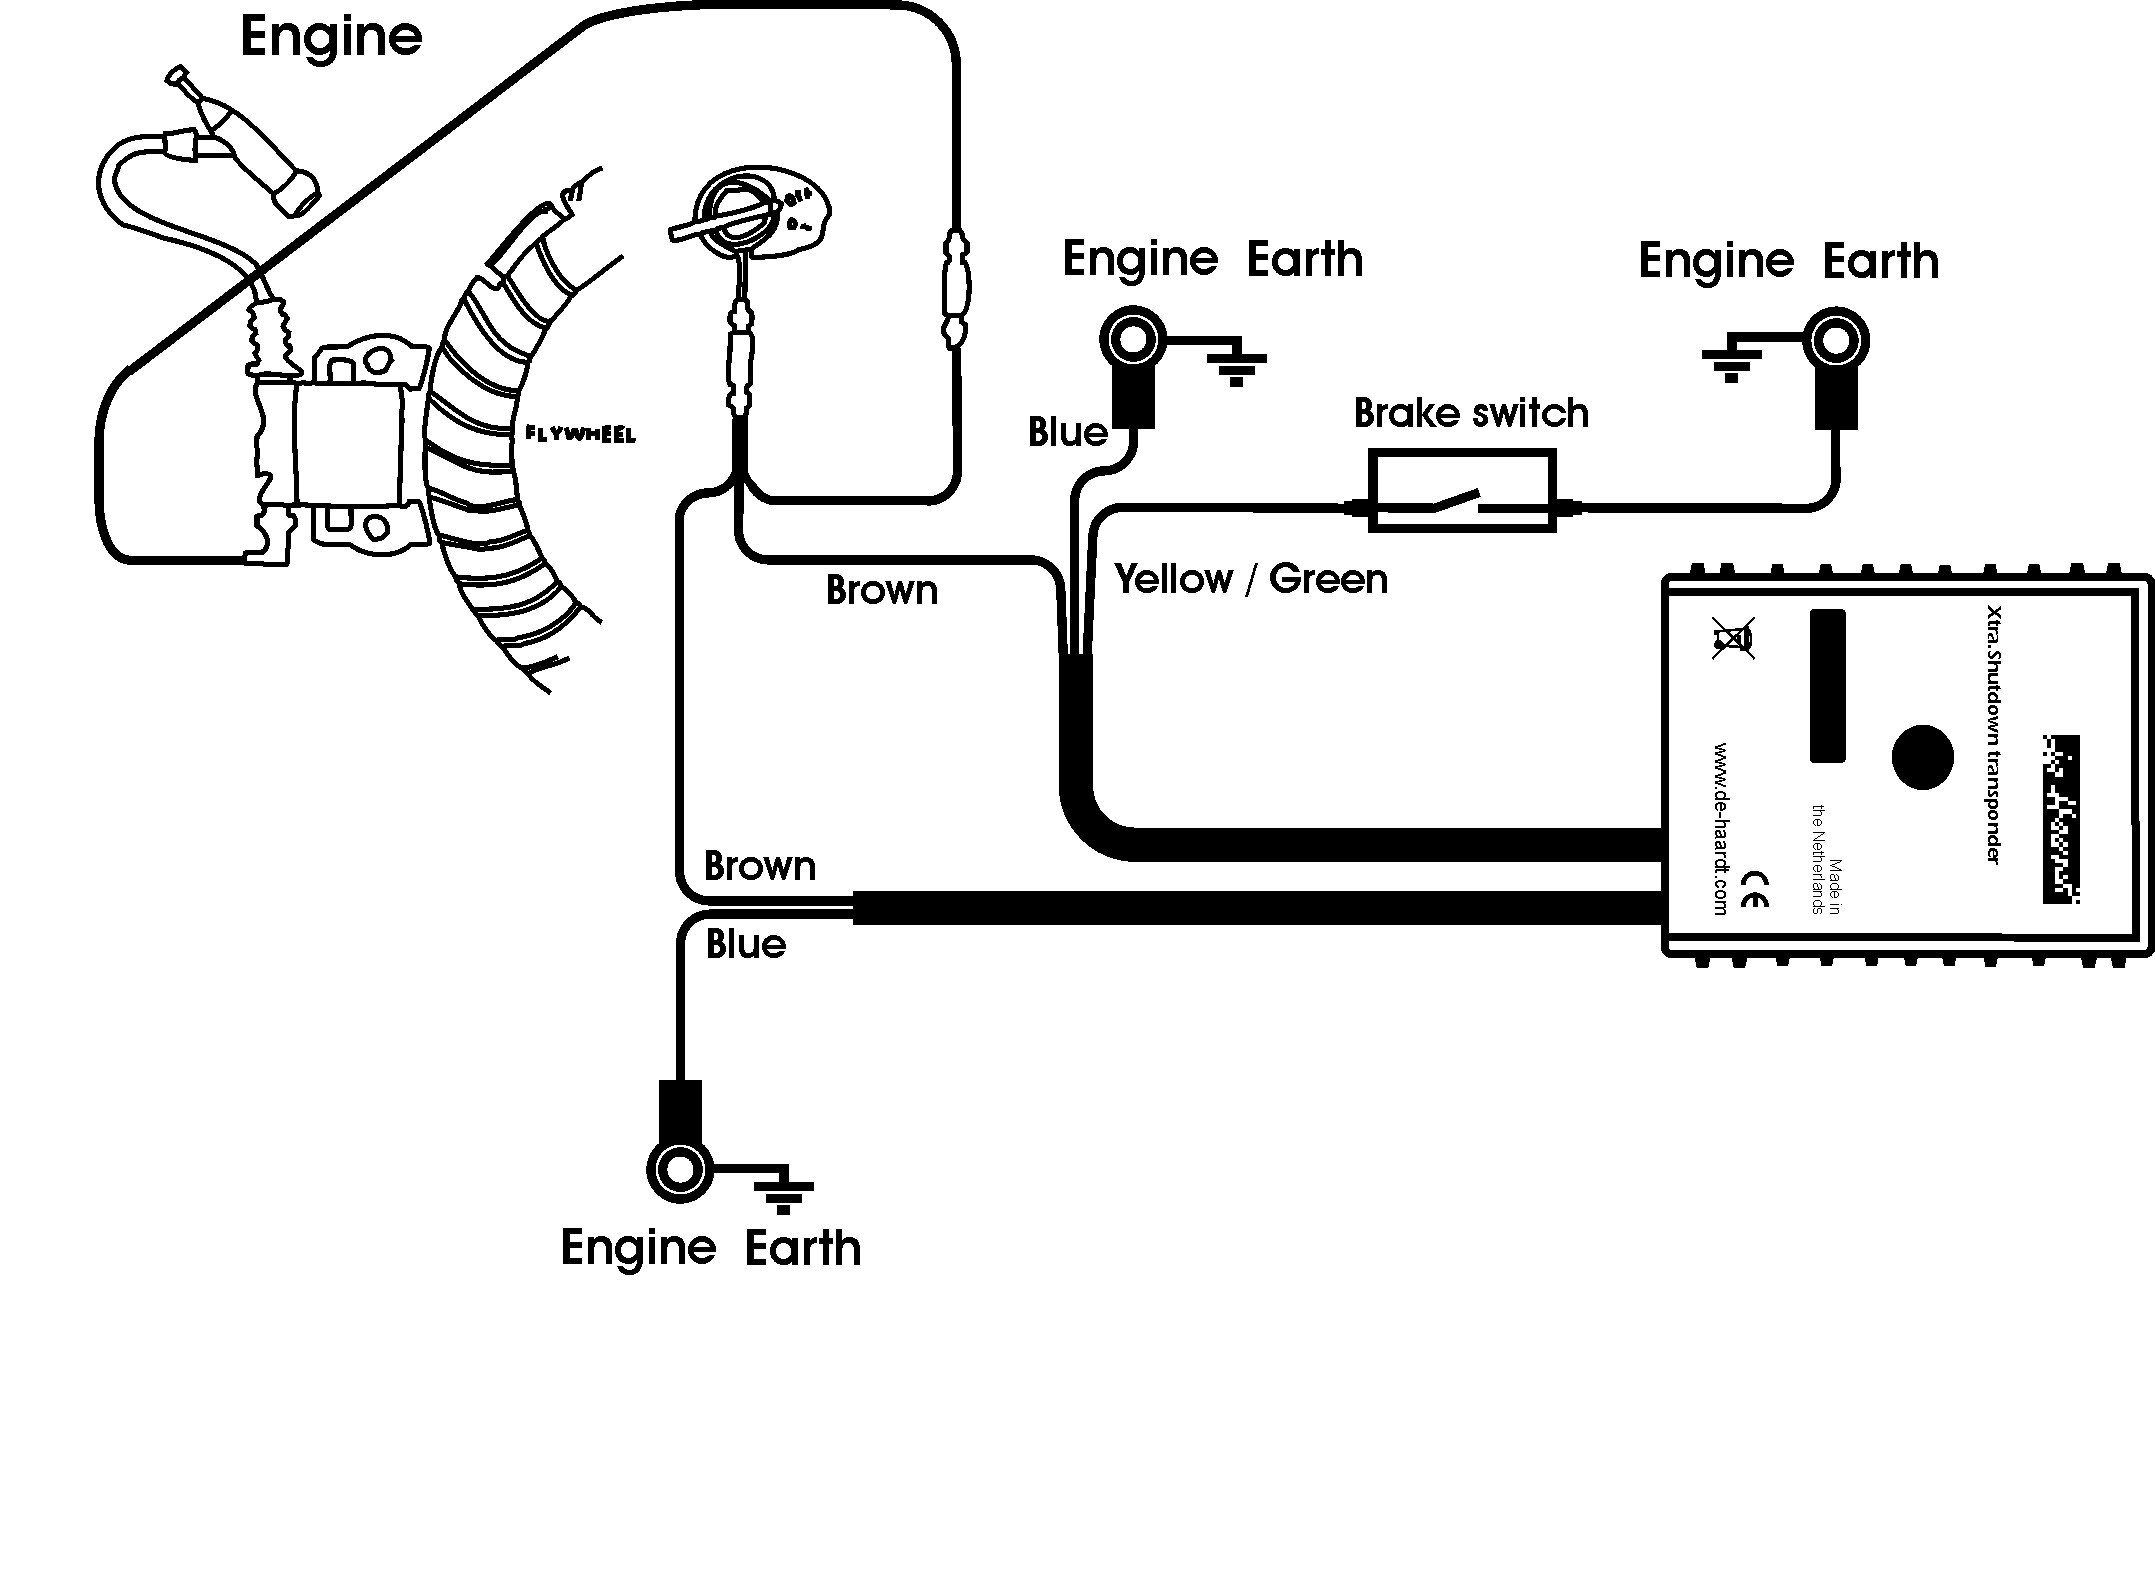 Predator Engines 670 Wiring Diagram Wiring Diagram